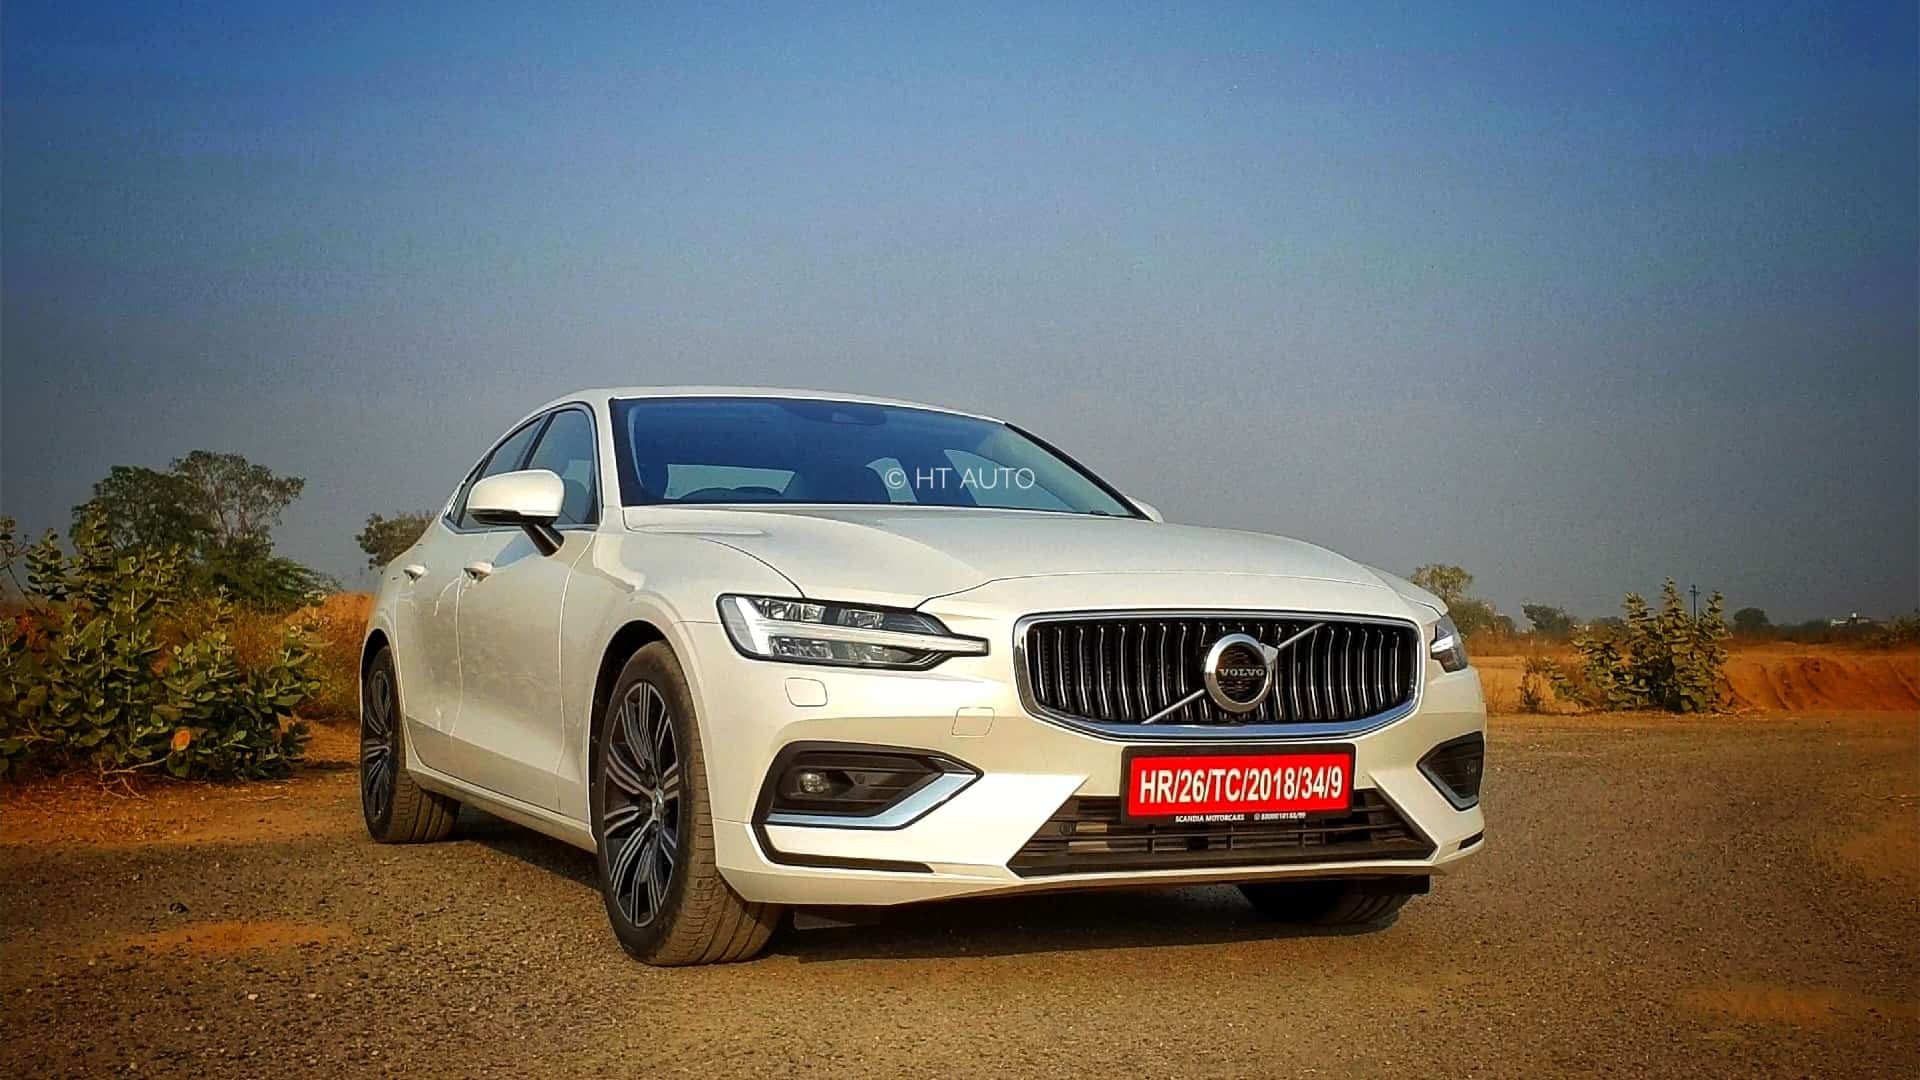 The front profile of the S60 is marked by the typical Volvo inscription grille with the trademark diagonal badge. The Thor hammer LED head lights with auto-bending feature sit smart on either side.